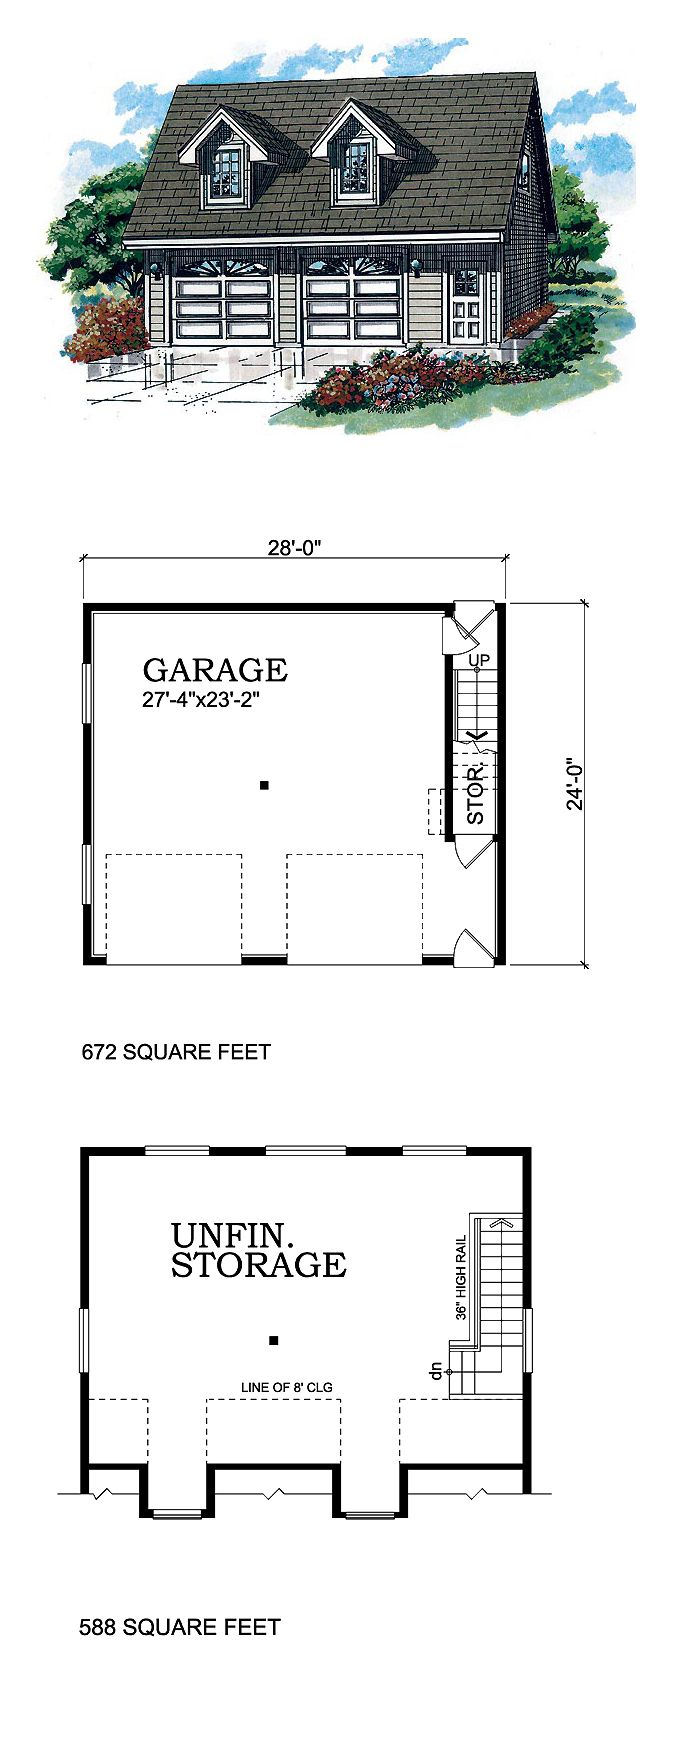 Two Car Garage Plan 55556 Area 672 Sq Ft Bonus 588 28 X24